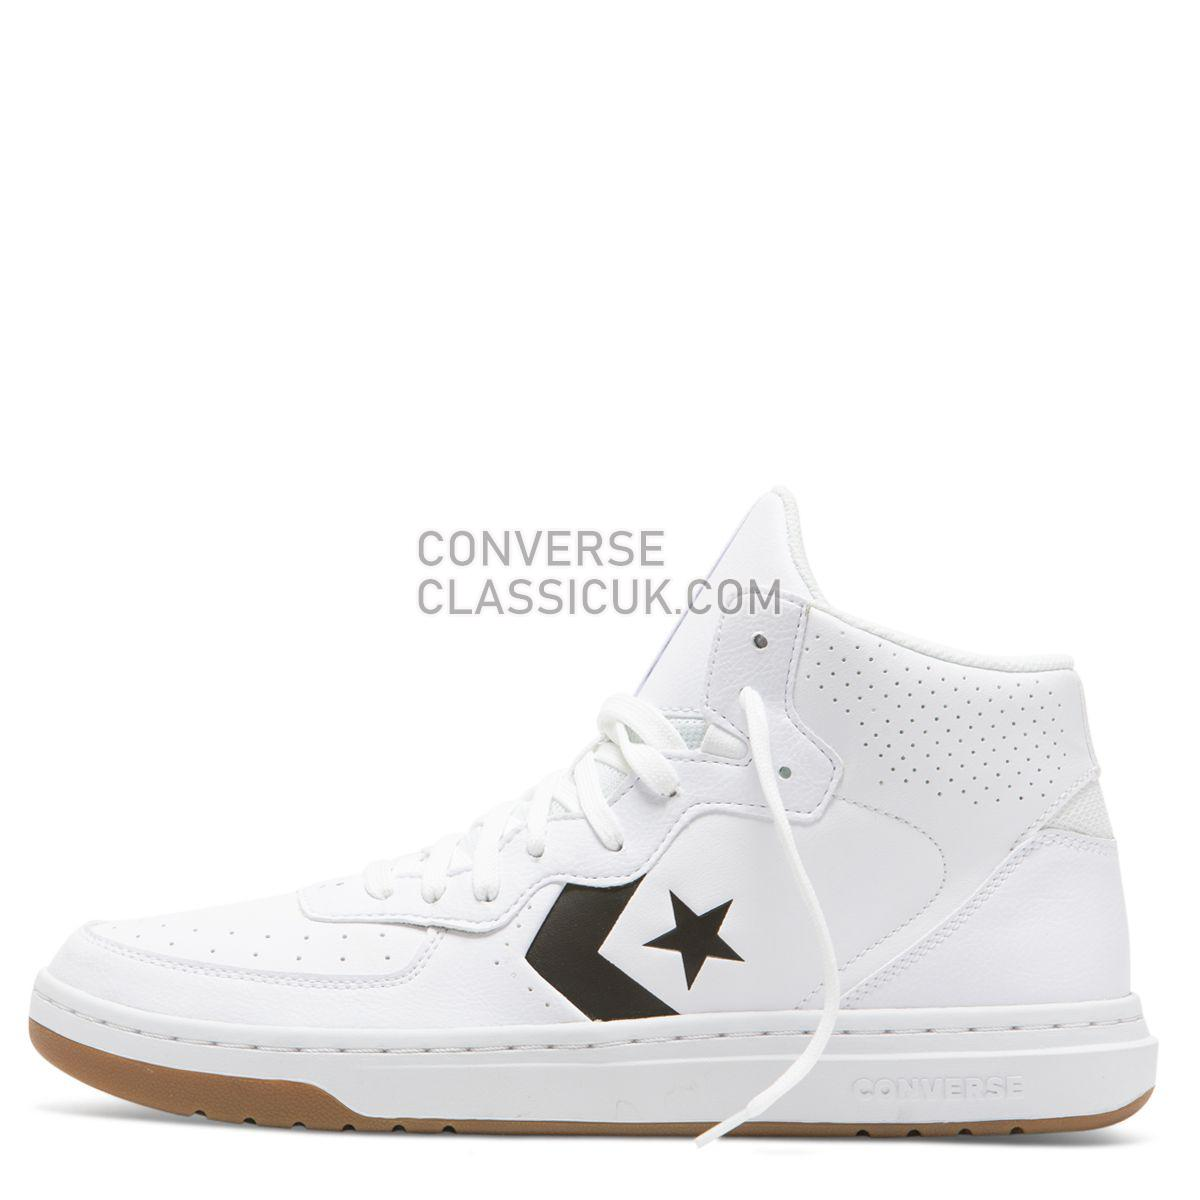 Converse Rival Shoot For The Moon Mid White Mens 164890 White/Black/White Shoes